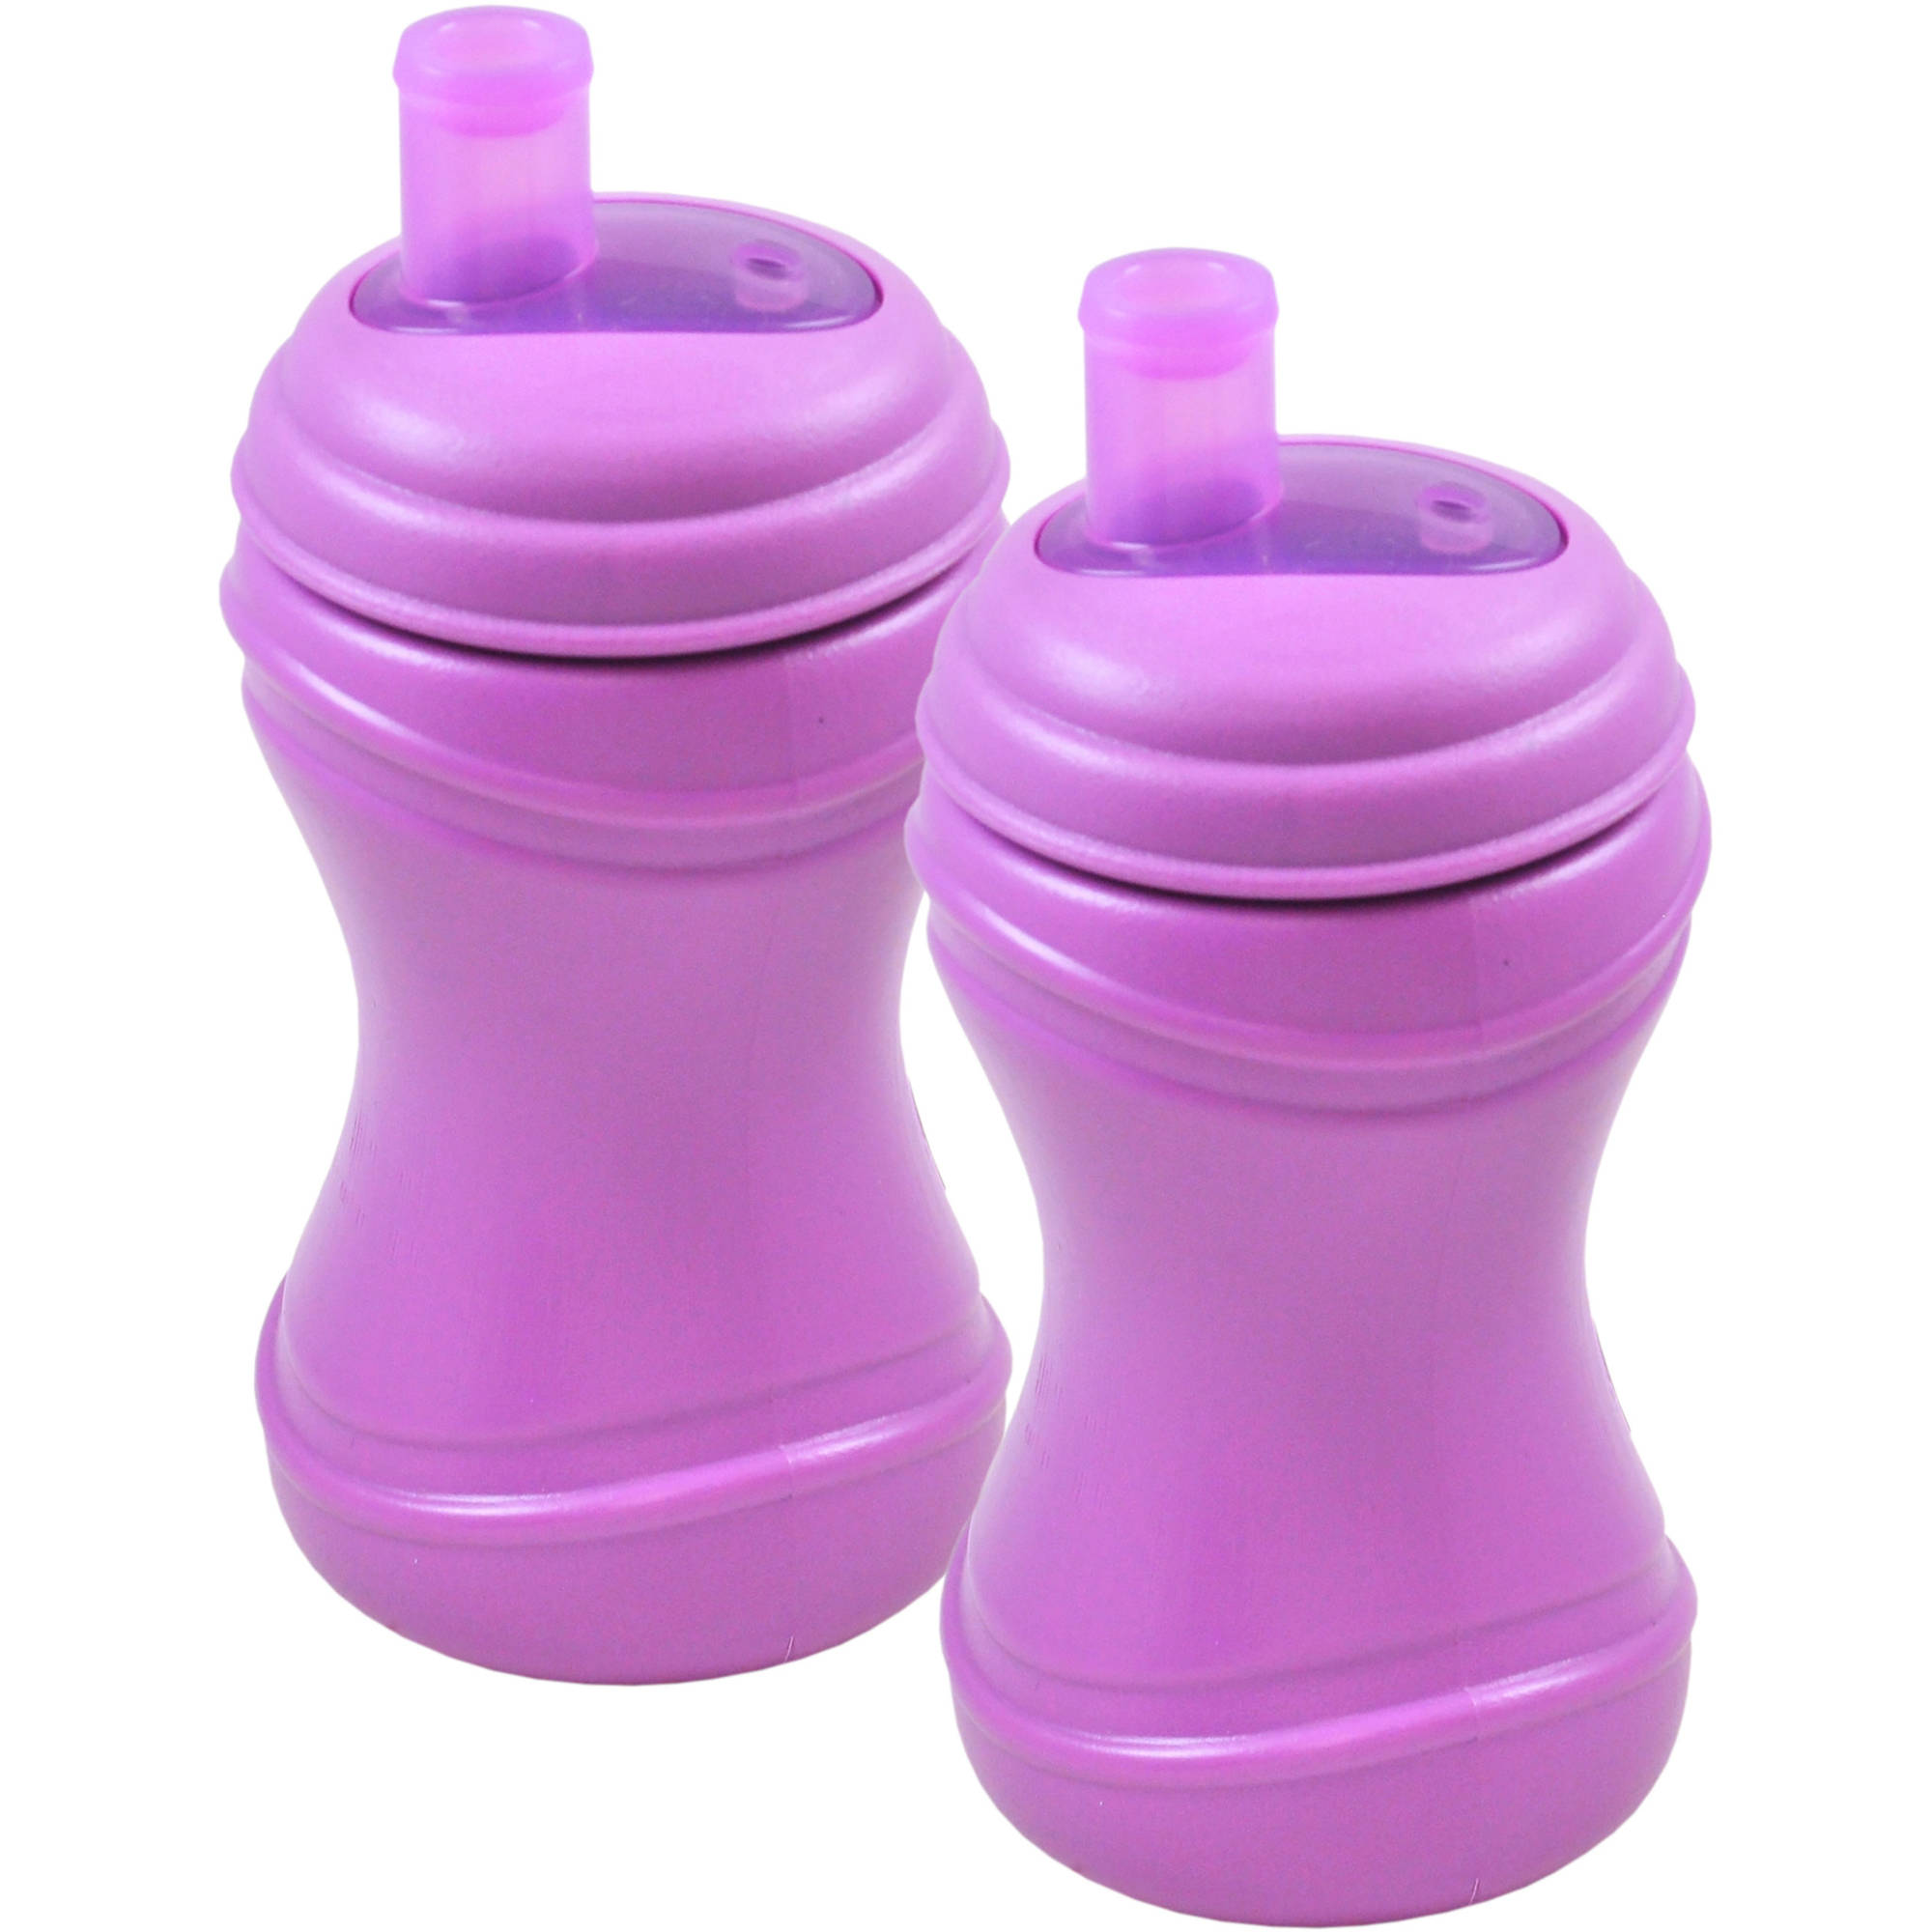 Re-Play 2-Pack Soft Spout Cups, BPA-Free